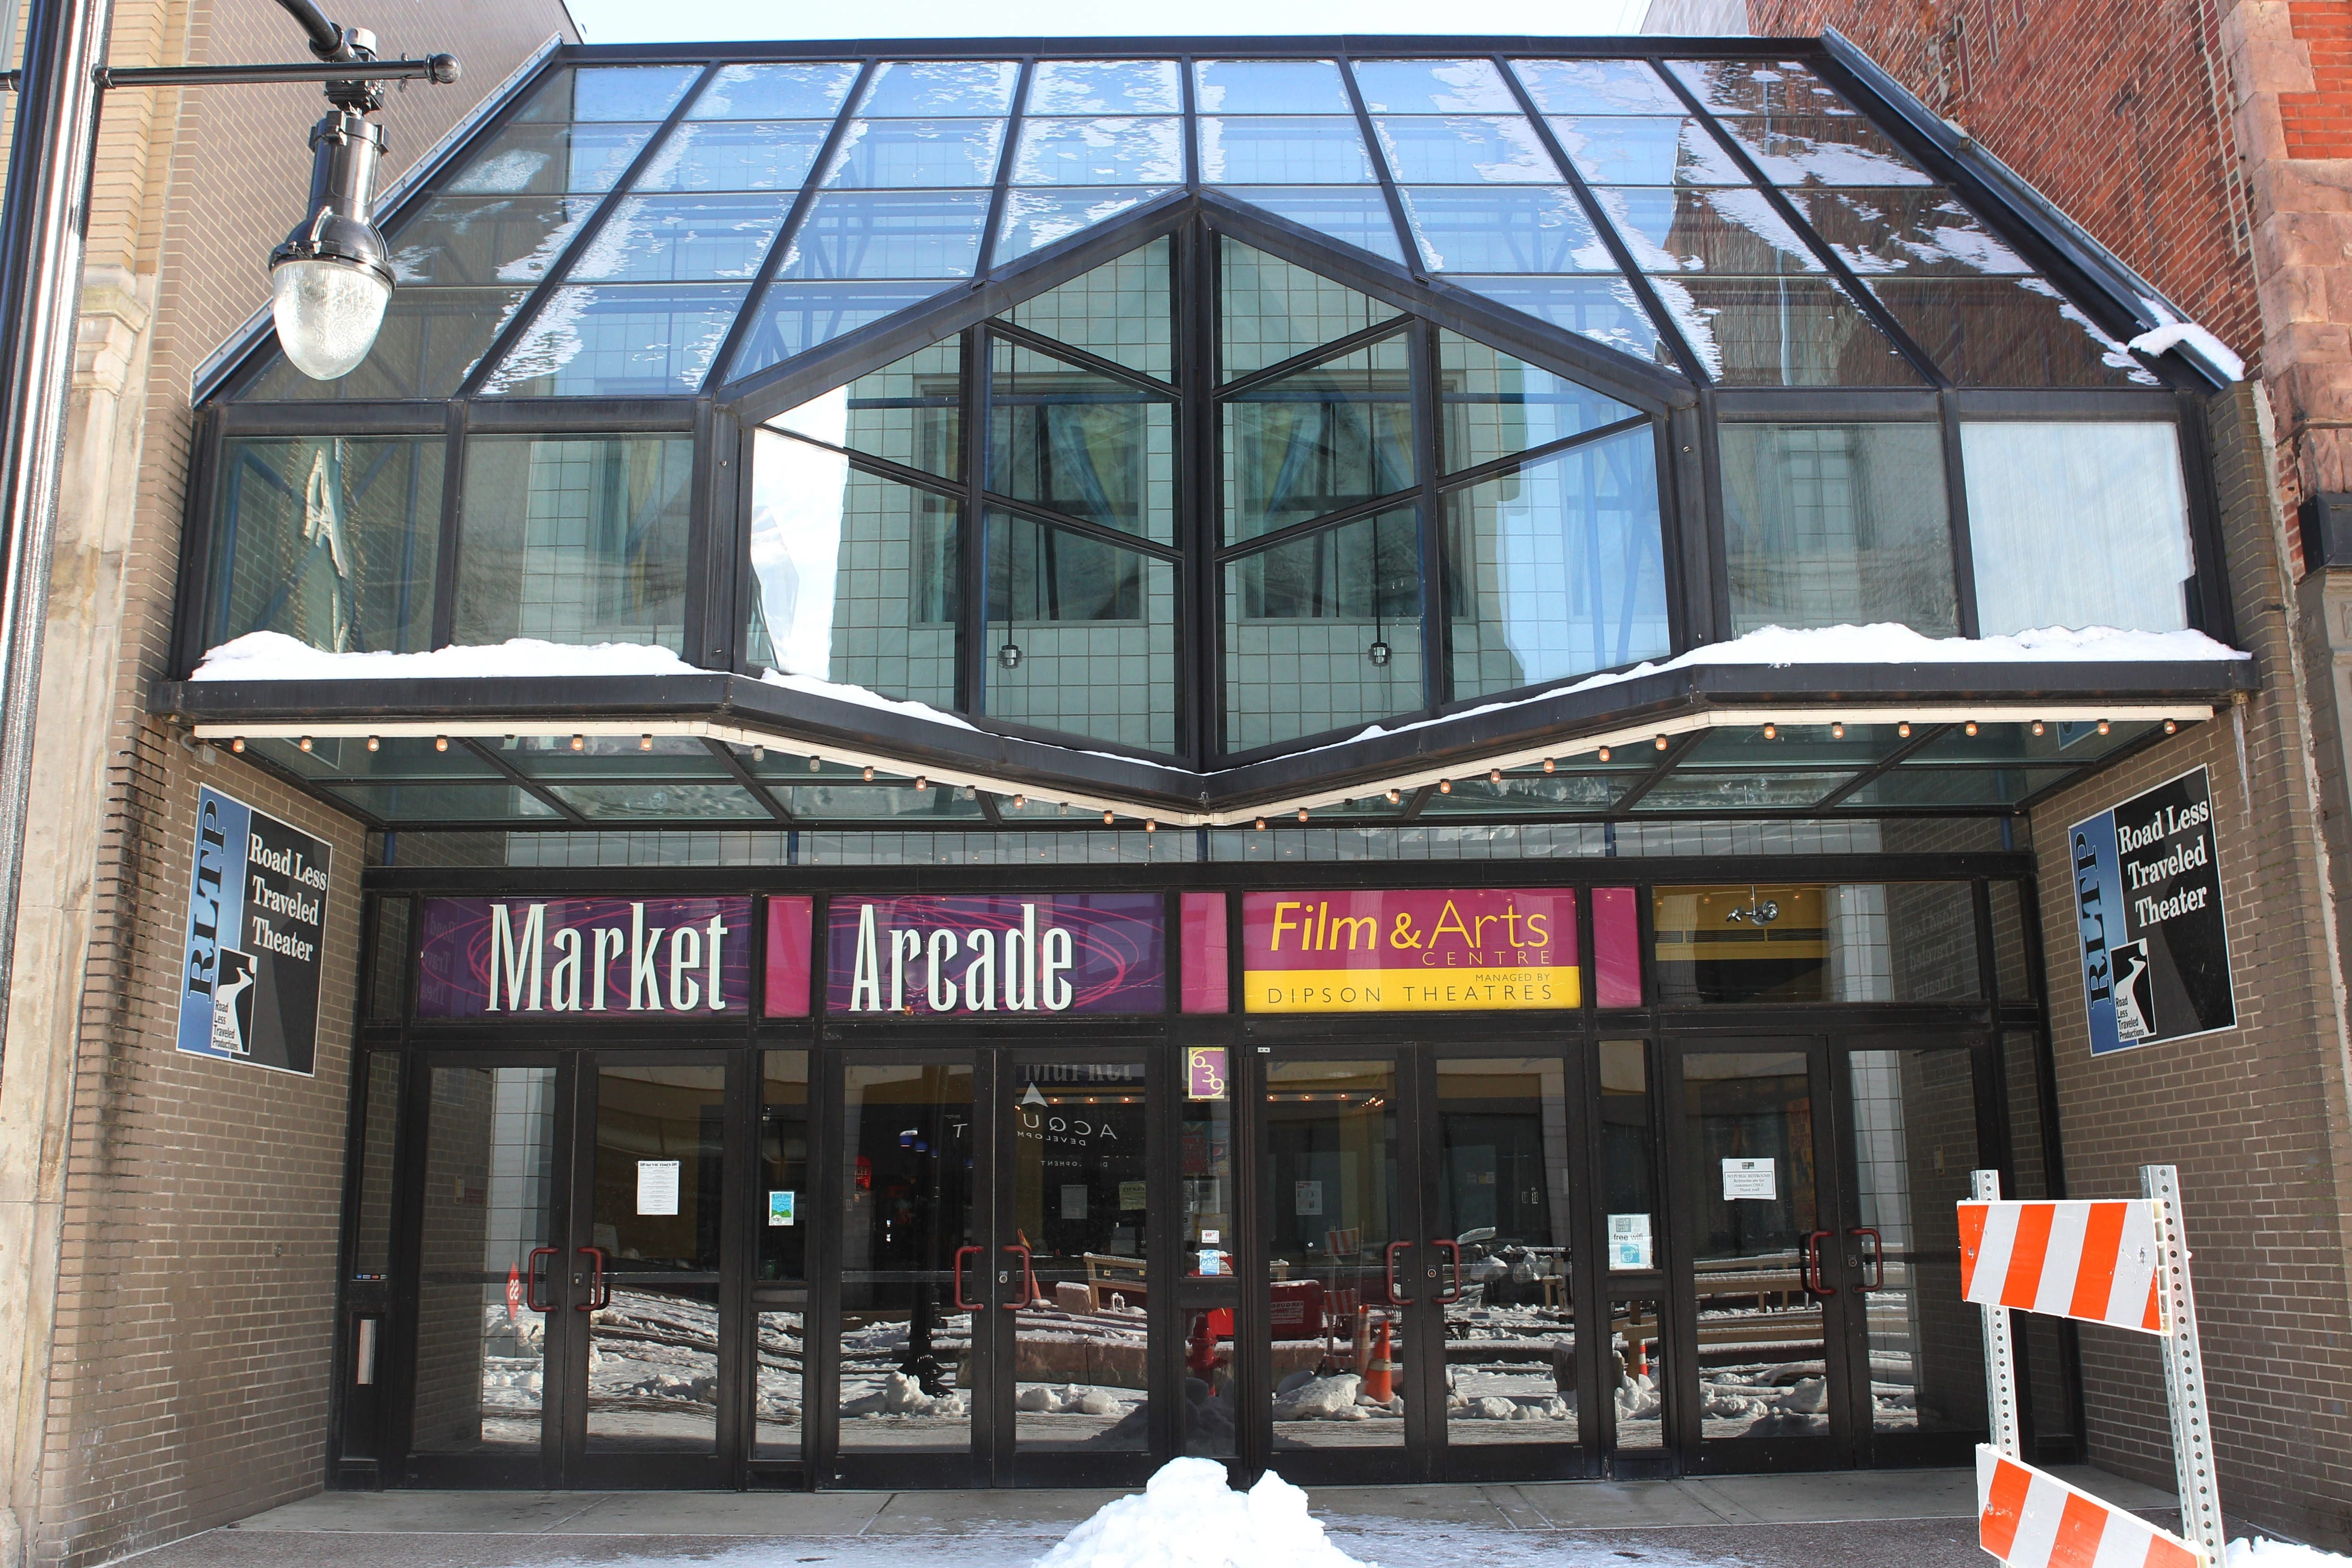 The city has received preliminary proposals from four parties interested in taking over the Market Arcade Film & Arts Centre.